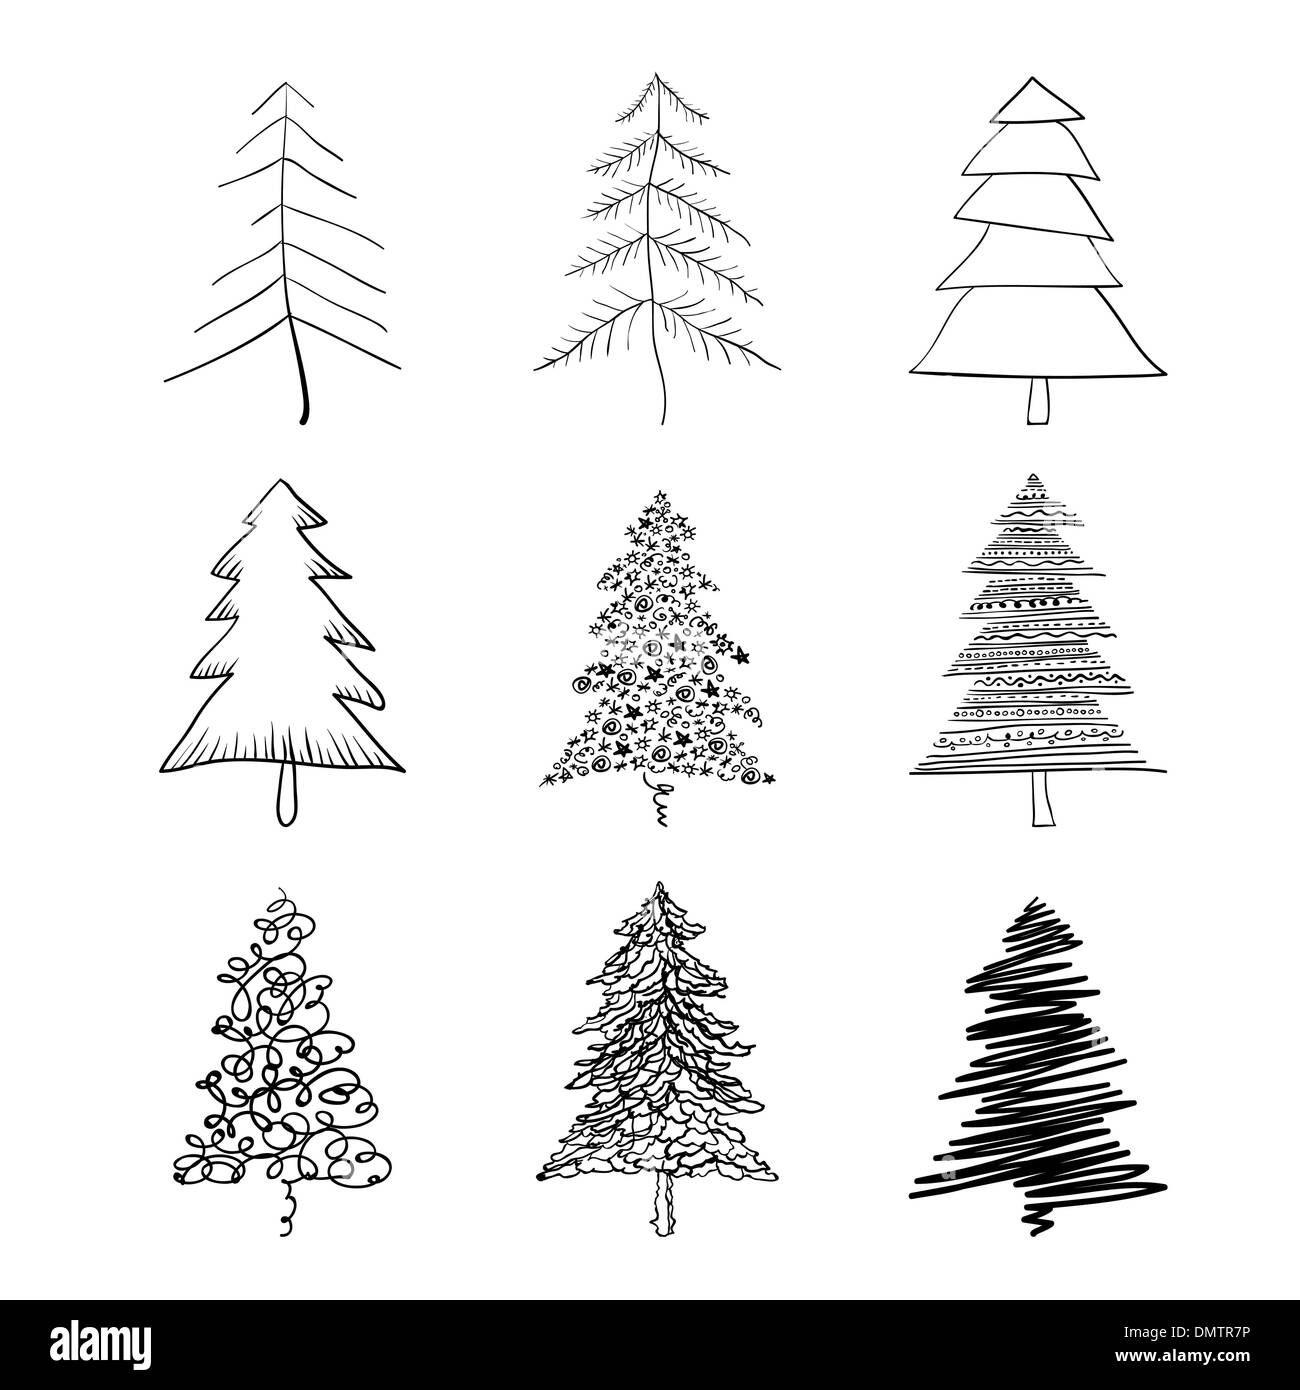 Christmas tree silhouette, set of illustrations. Vector, EPS8. Stock Vector